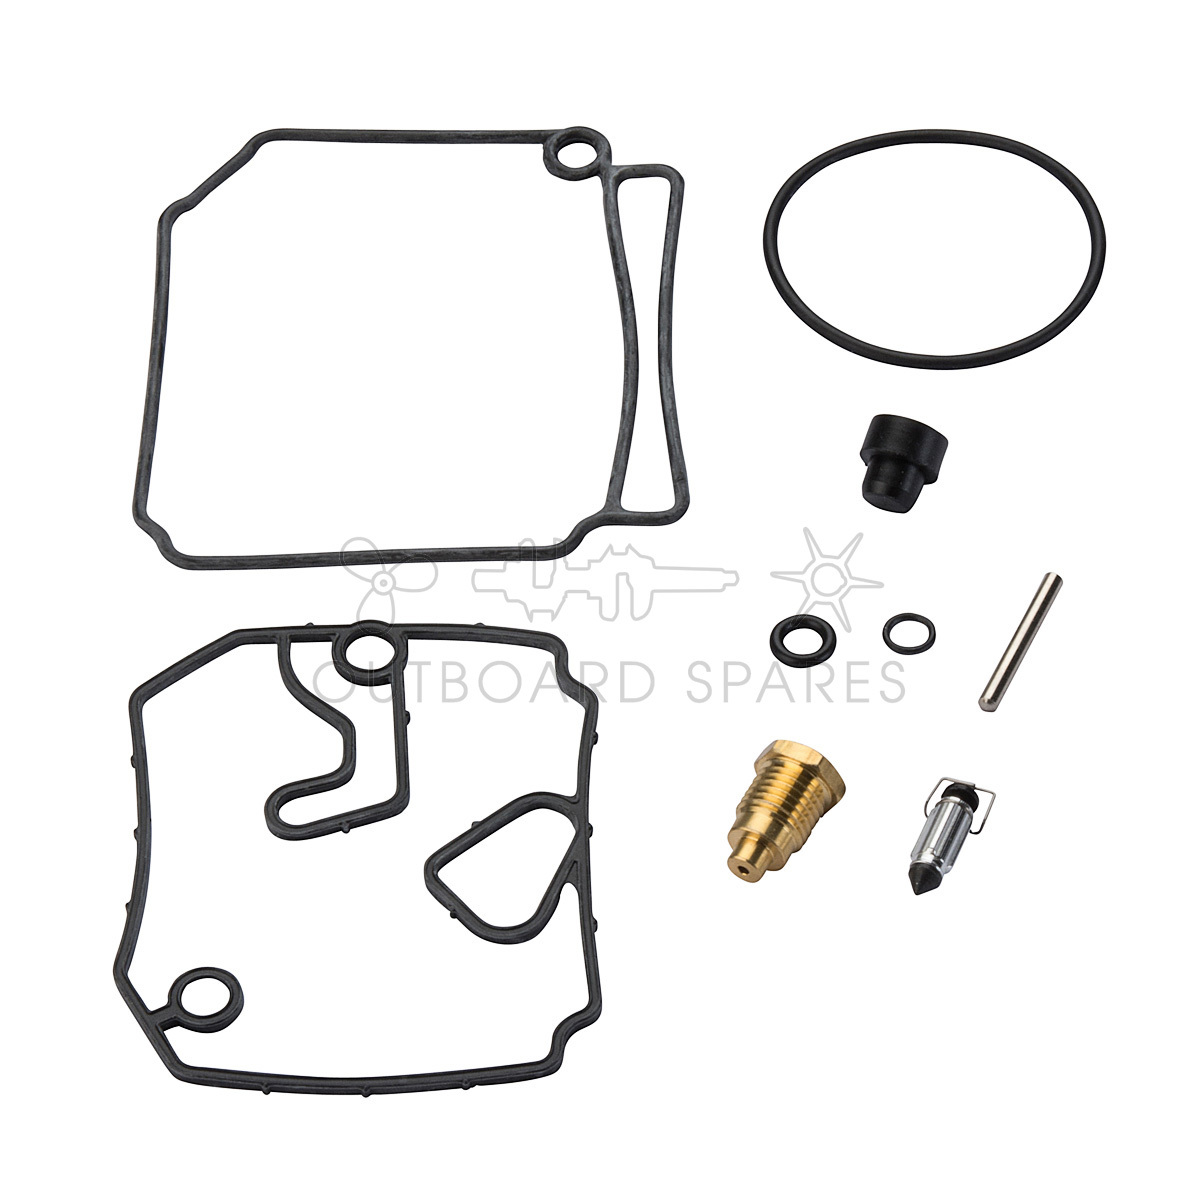 Yamaha Carburettor Kit for 60hp, 70hp Outboard (Part # 6H2